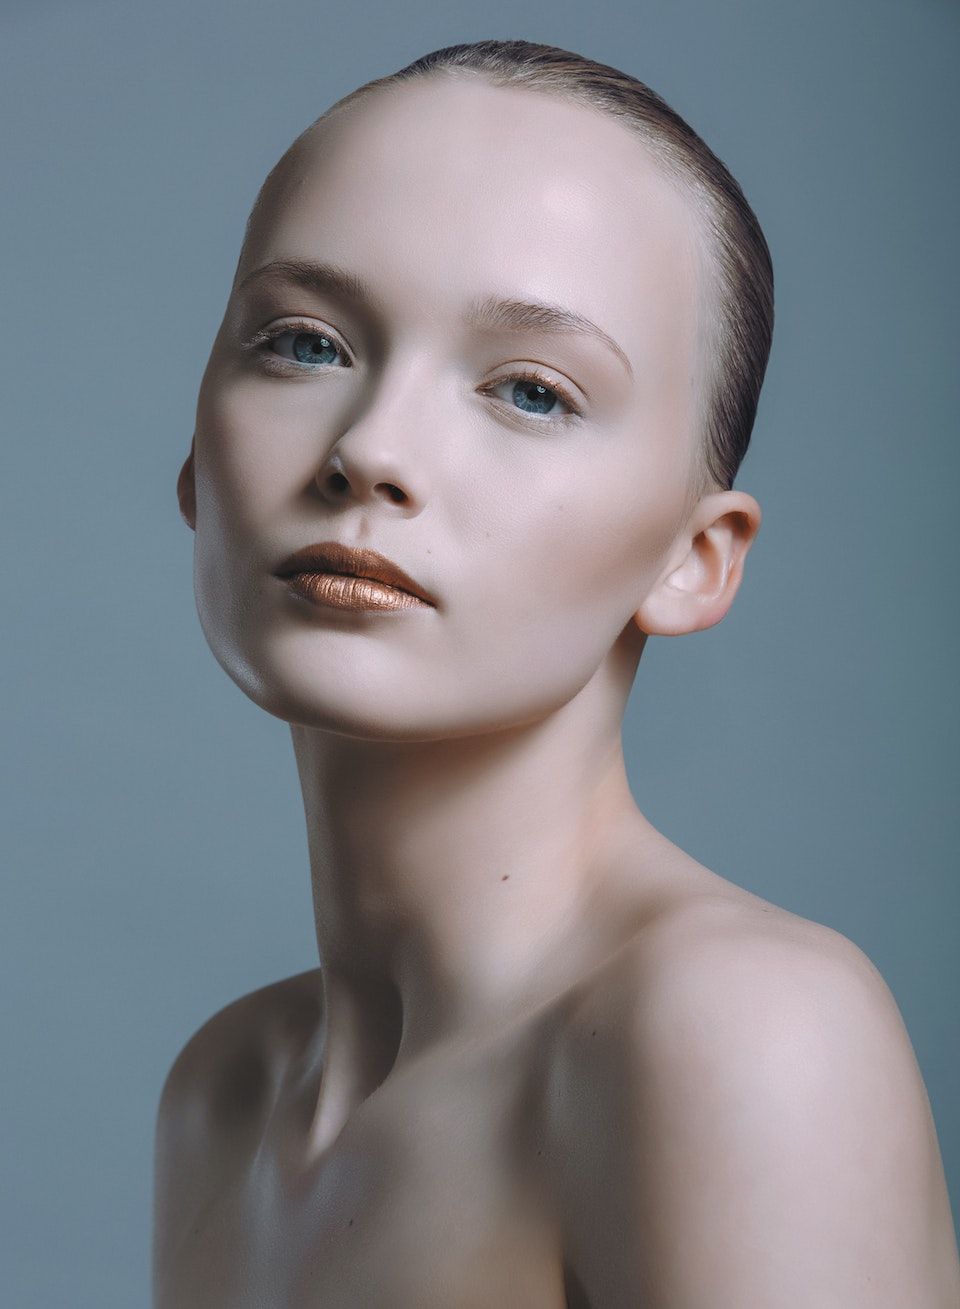 JARRED Photography - AU NATURAL - STACEY WHITTAKER